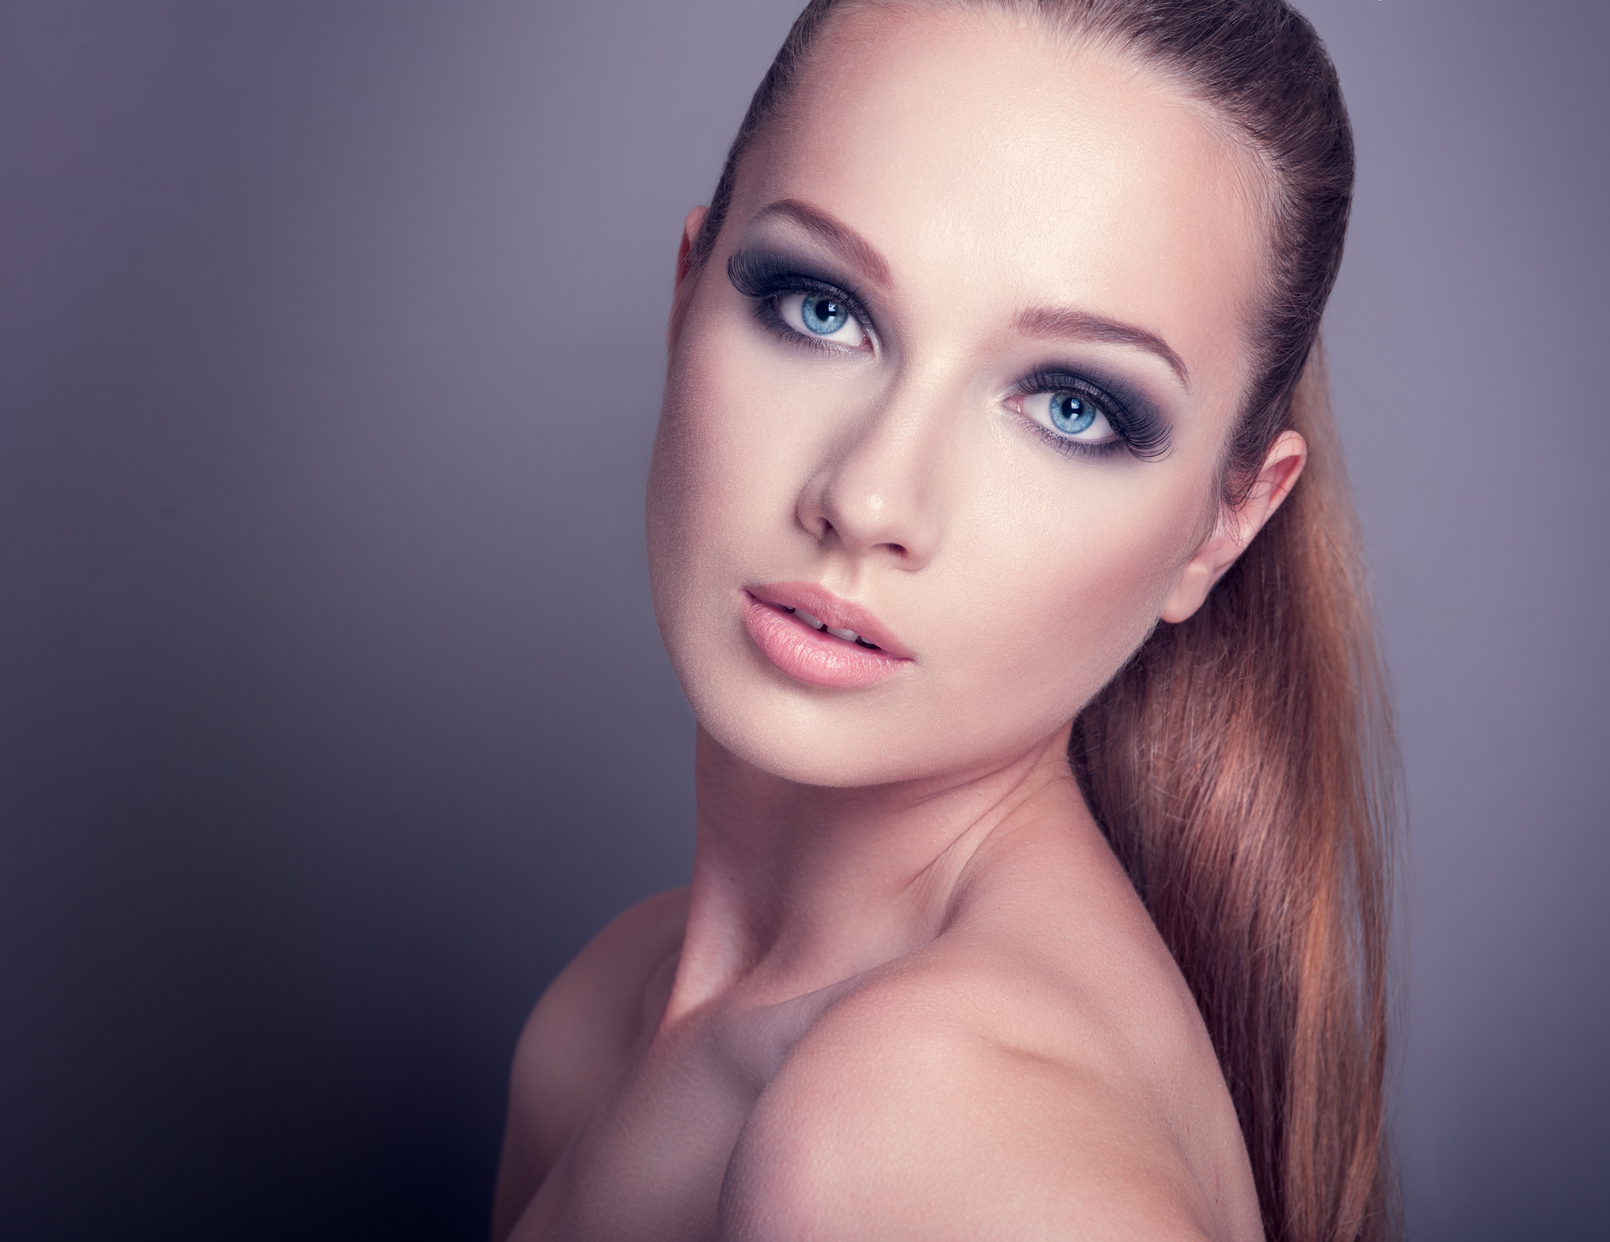 beautiful woman on a dark background with smoky eye makeup